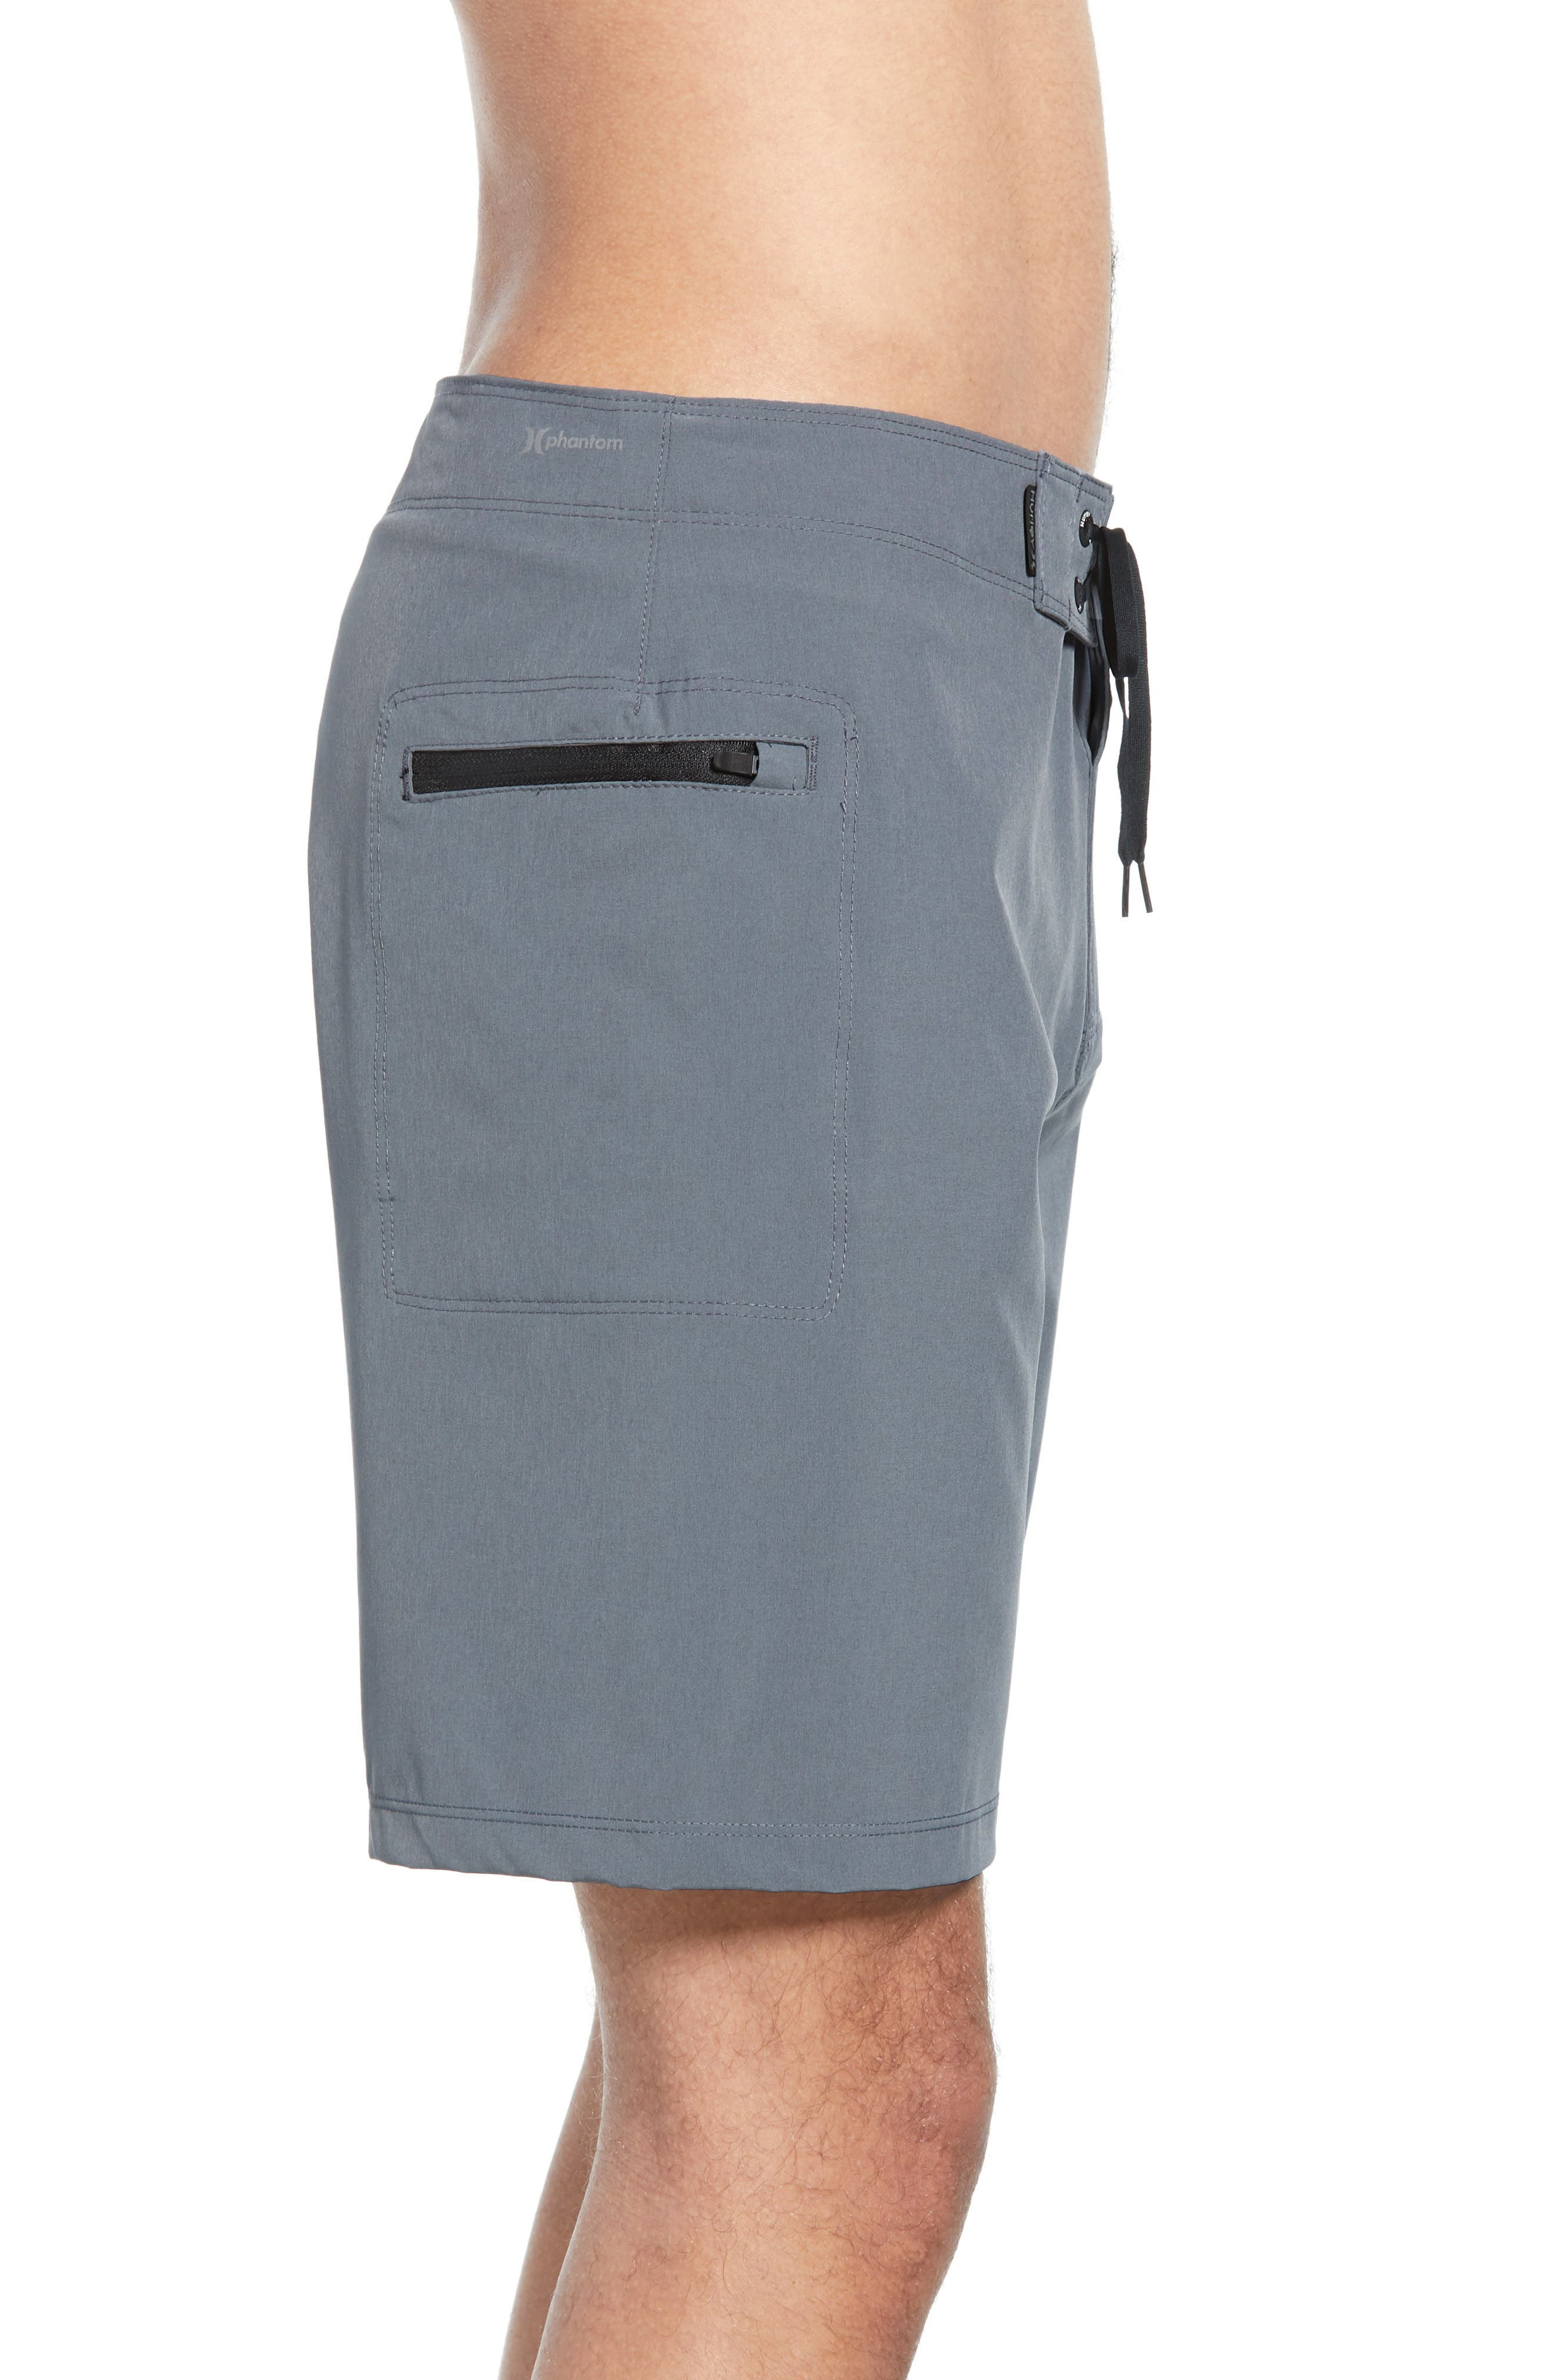 HURLEY, Phantom One & Only Board Shorts, Alternate thumbnail 3, color, COOL GREY